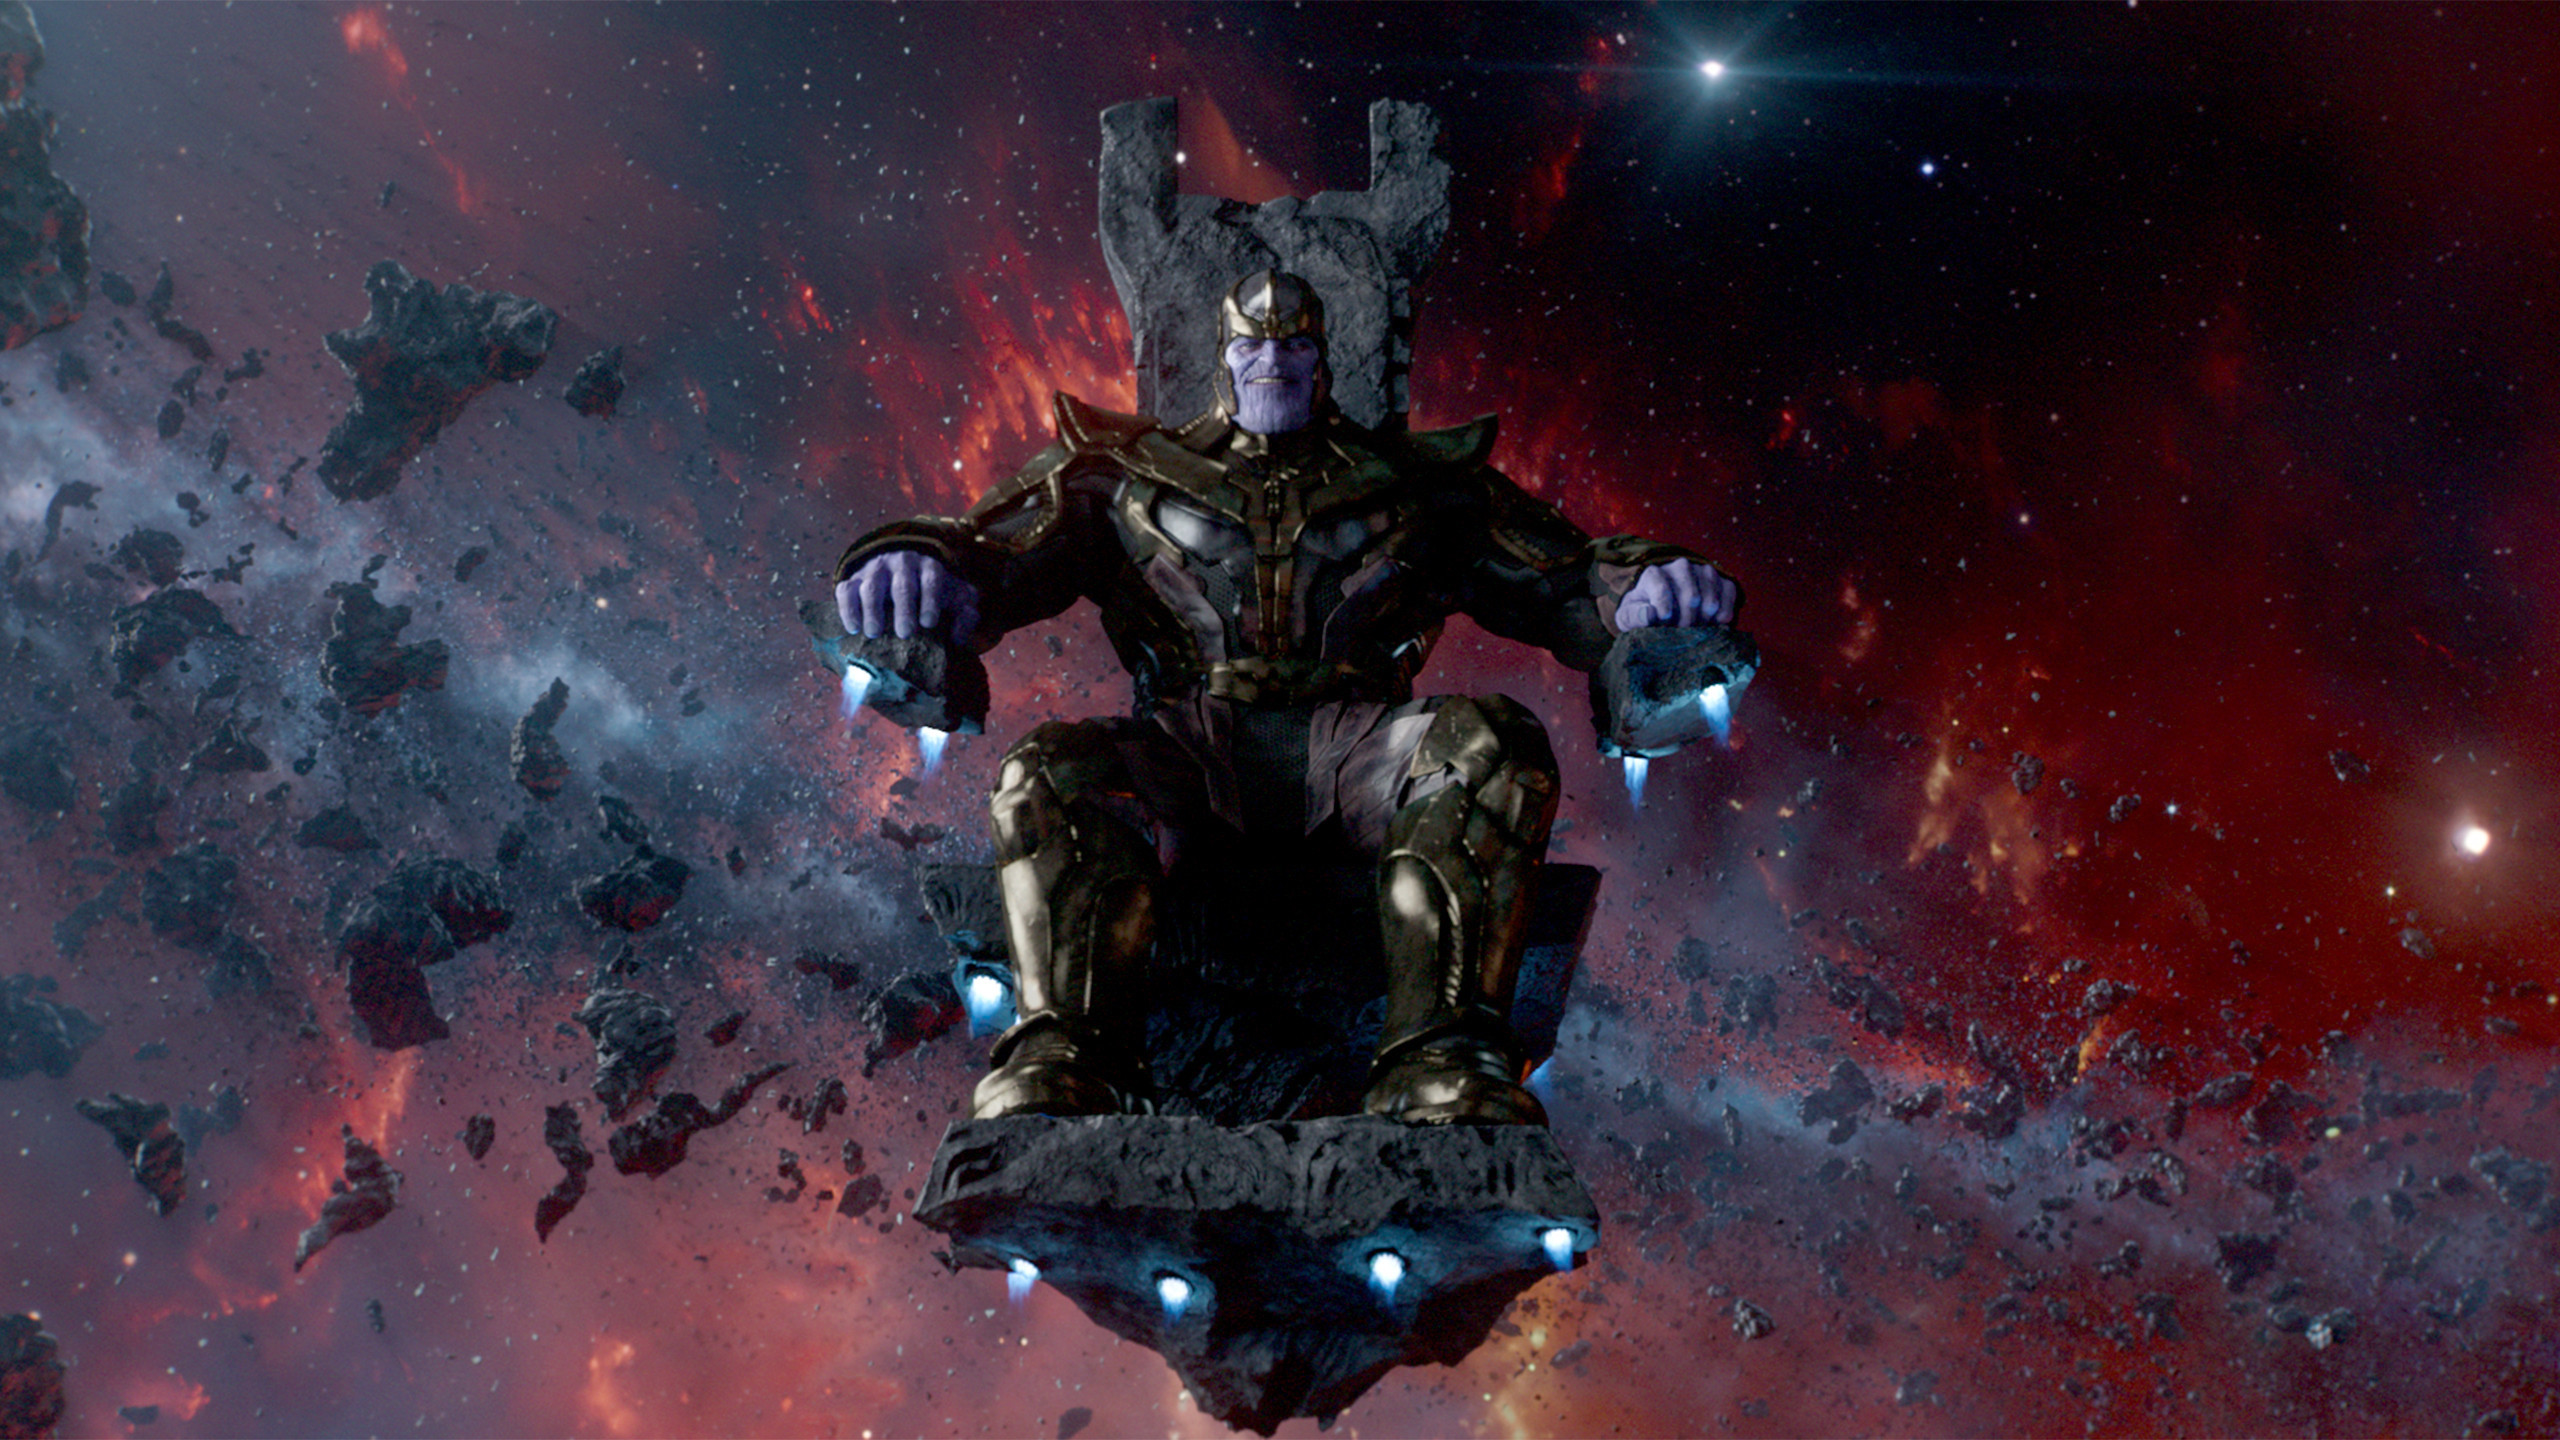 100% Quality HD Incredible Thanos Wallpapers HD Wallpapers